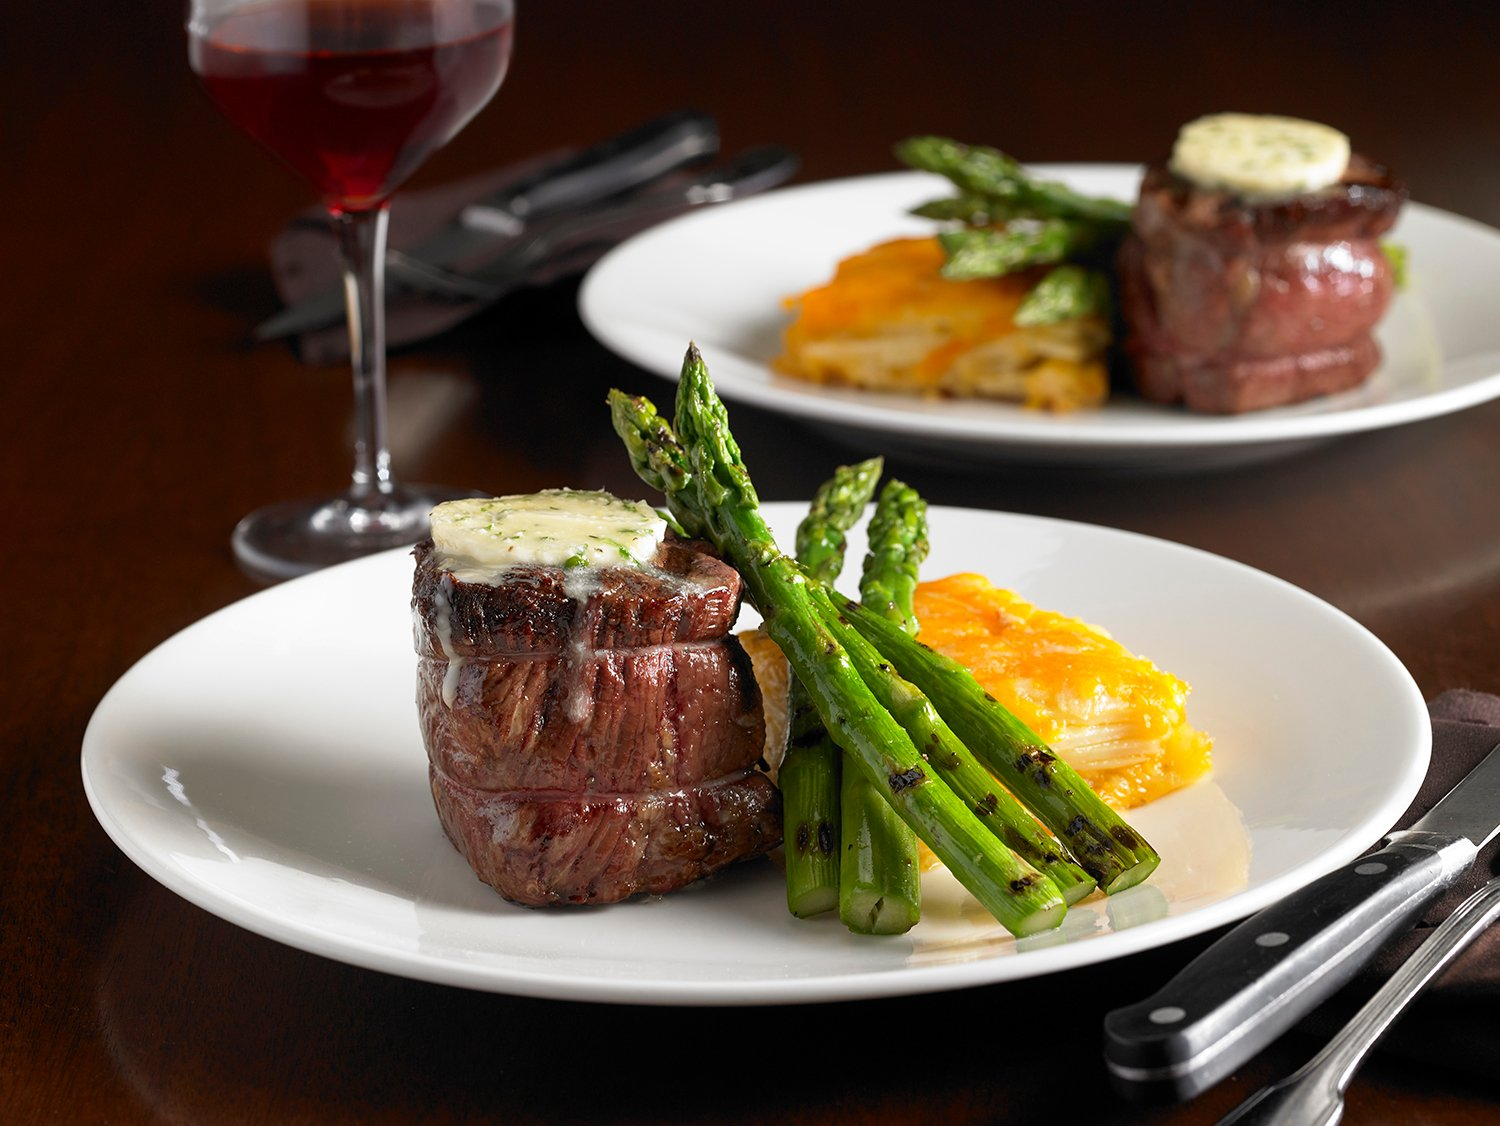 Mystic Steakhouse steak and asparagus